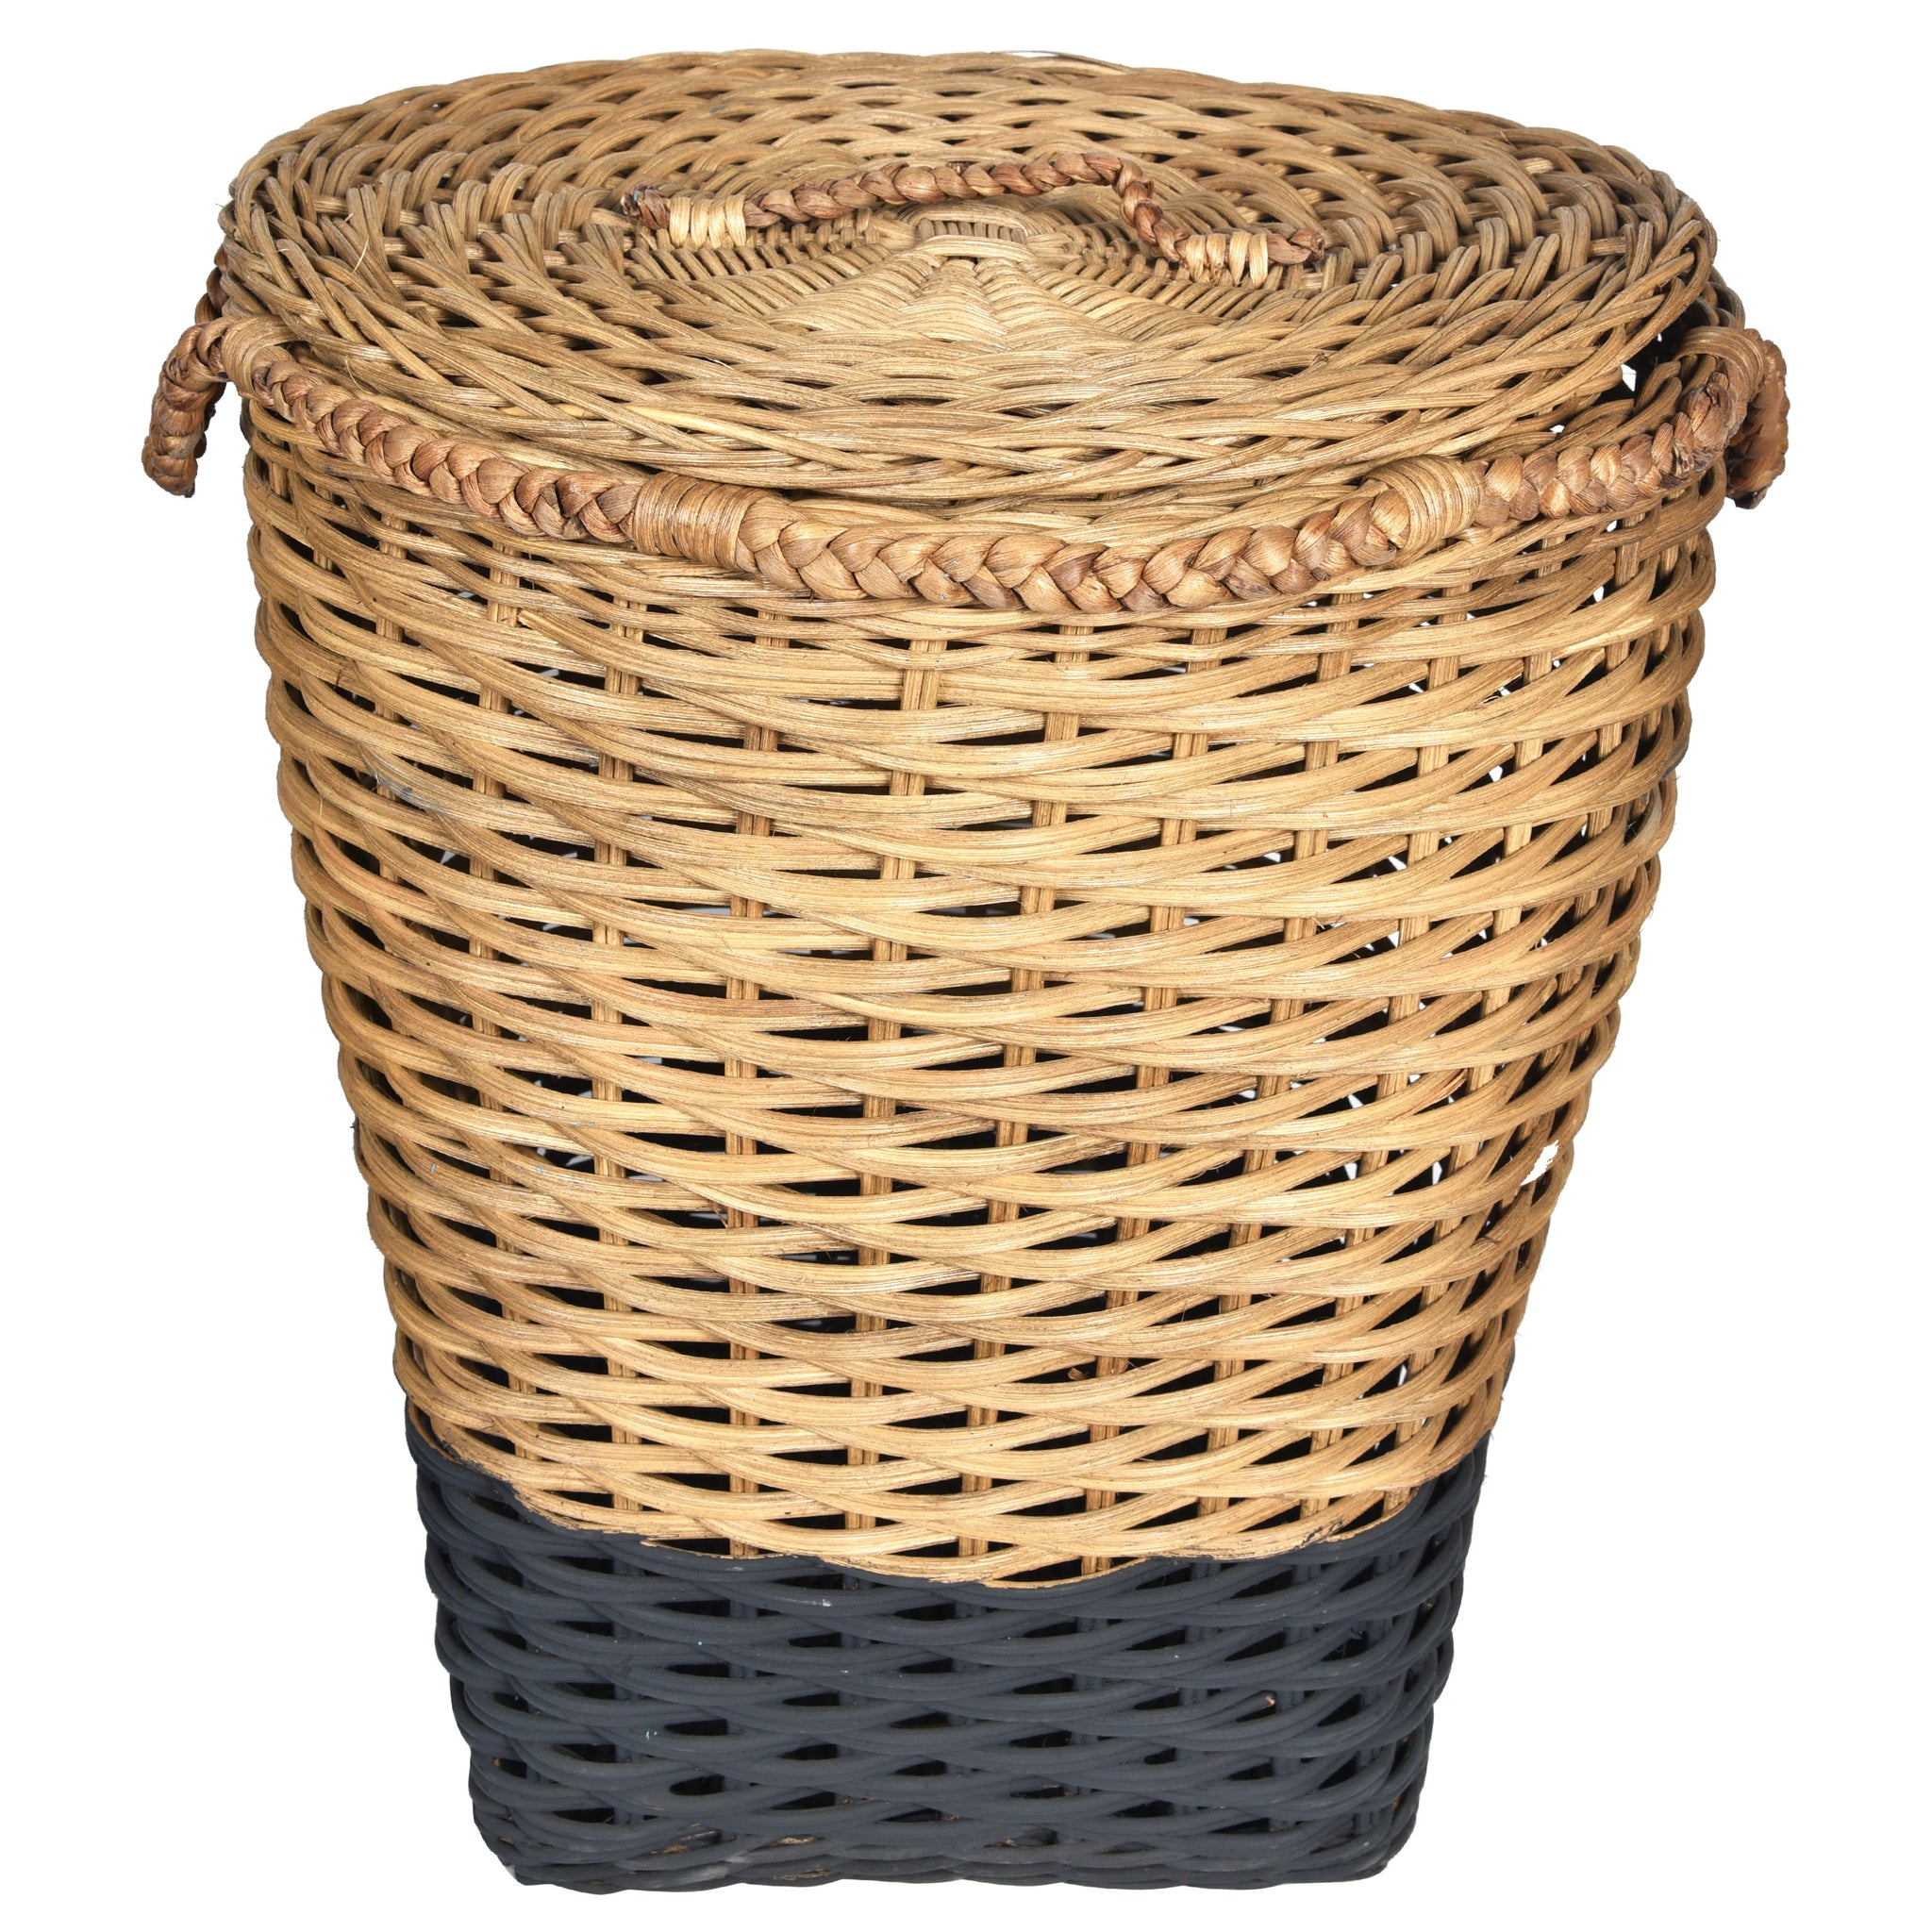 MOD Laundry Storage Basket with Lid - Natural & Black